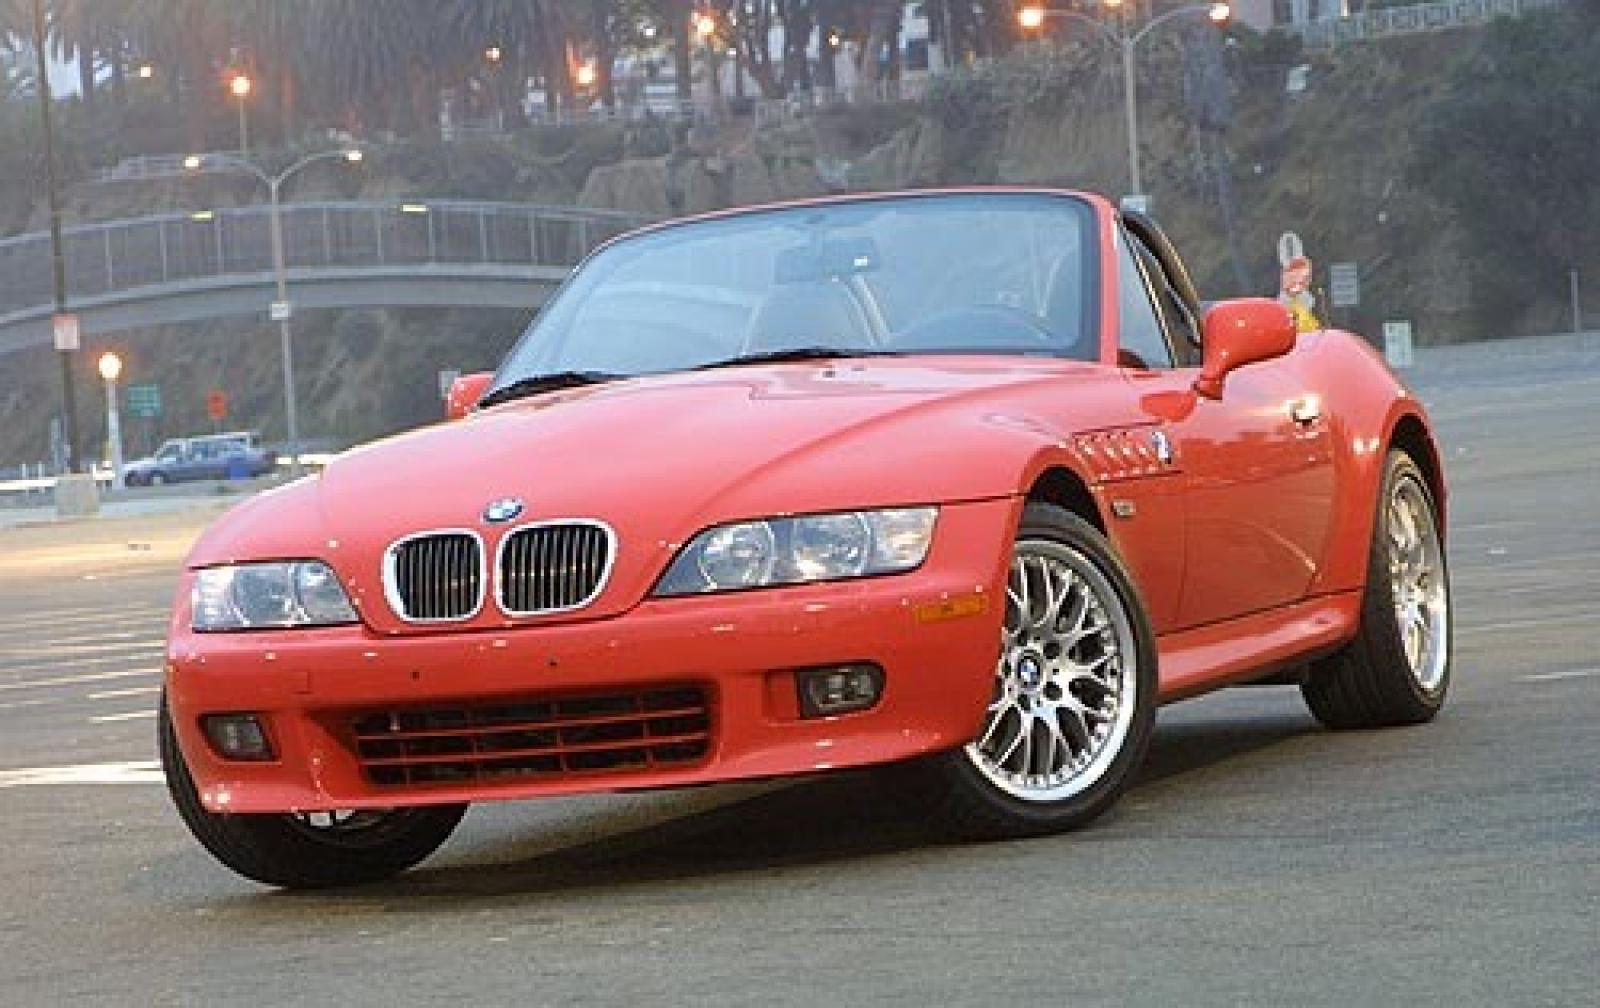 2002 Bmw Z3 Information And Photos Zombiedrive